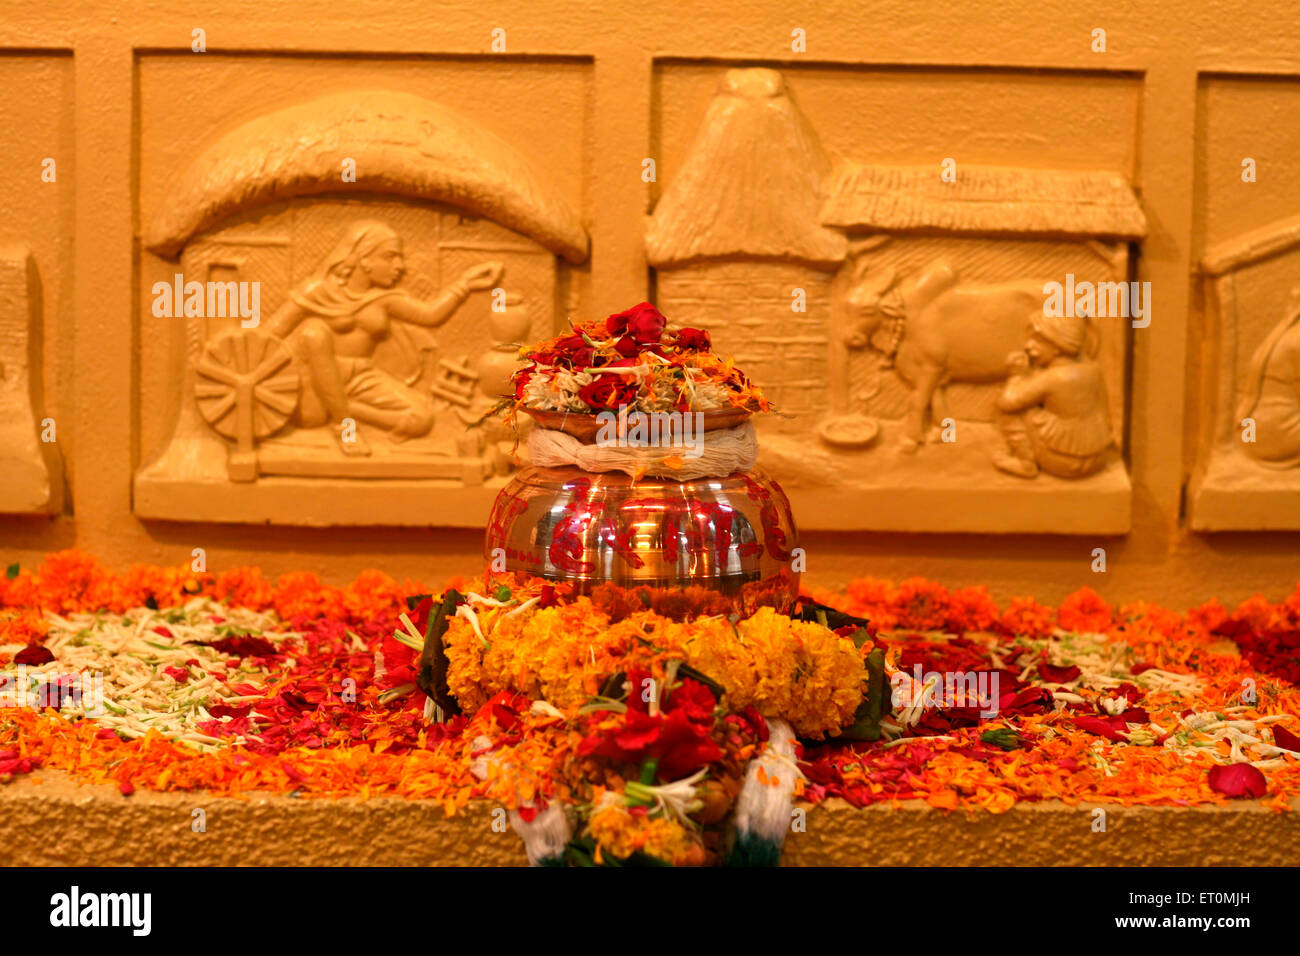 Urn containing ashes of father of nation ; Mahatma Gandhi kept amidst of flowers for public display at Mani Bhavan - Stock Image